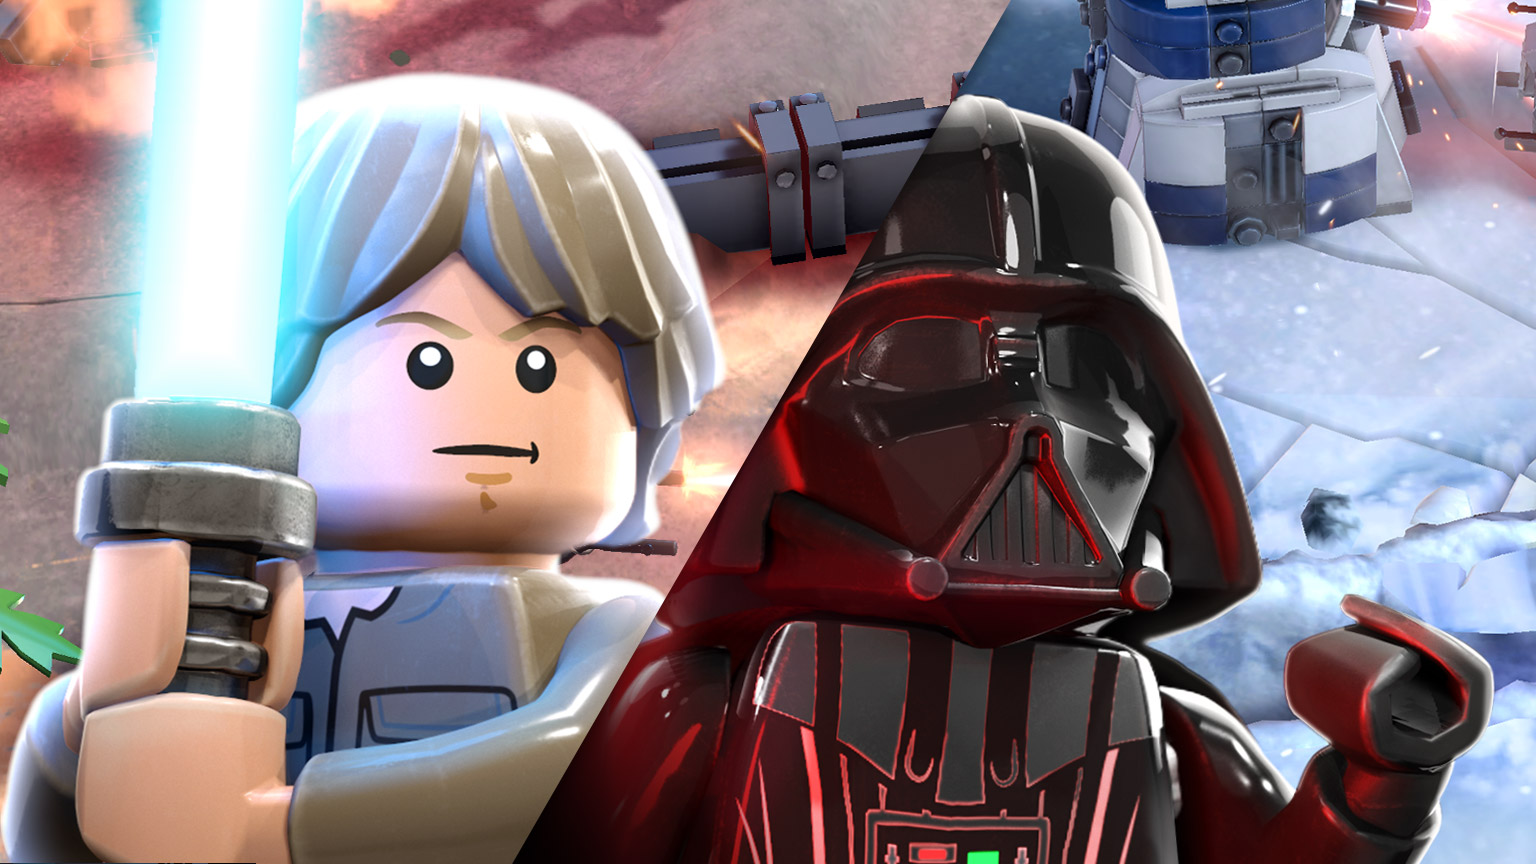 Android Games 2020.Lego Star Wars Battles Ftp Strategy Game Coming To Android